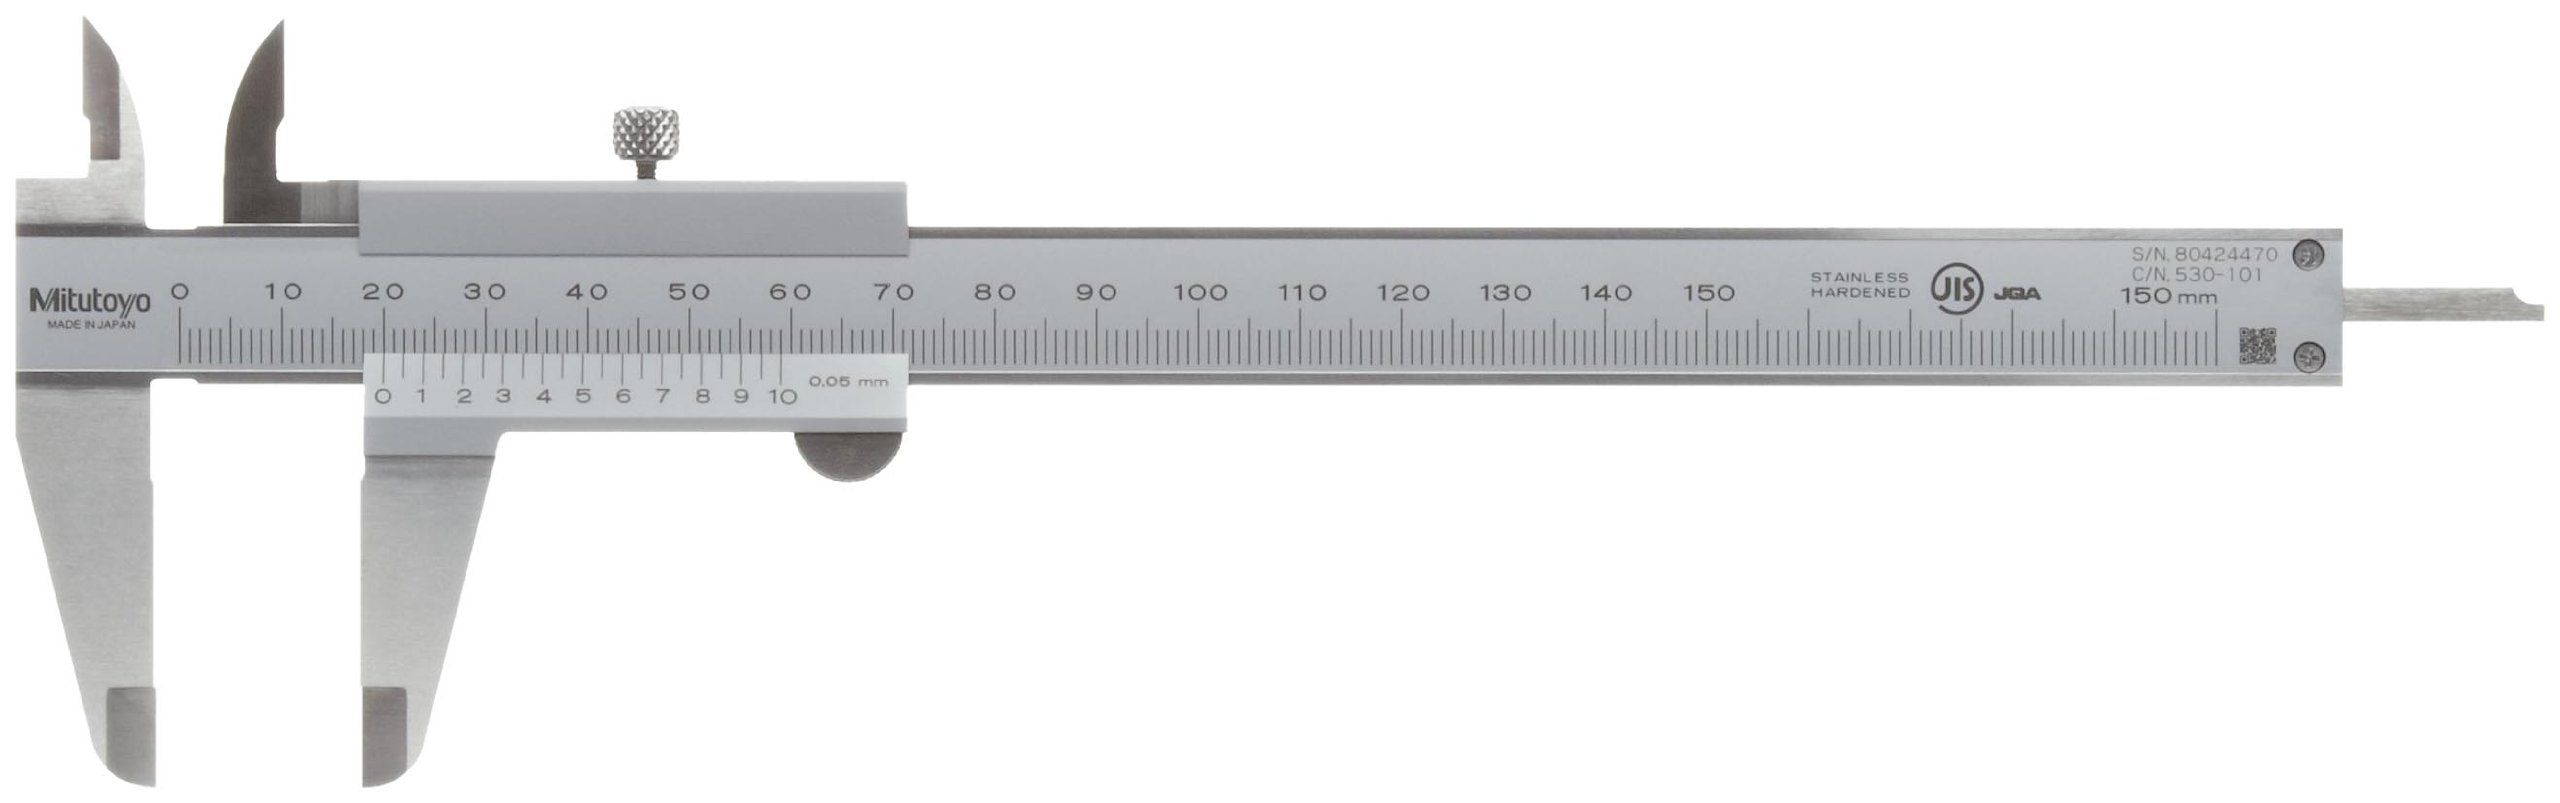 Mitutoyo 530-101 Vernier Calipers, Stainless Steel, for Inside, Outside, Depth and Step Measurements, Metric, 0''/0mm-150mm Range, +/-0.05mm Accuracy, 0.05mm Resolution, 40mm Jaw Depth